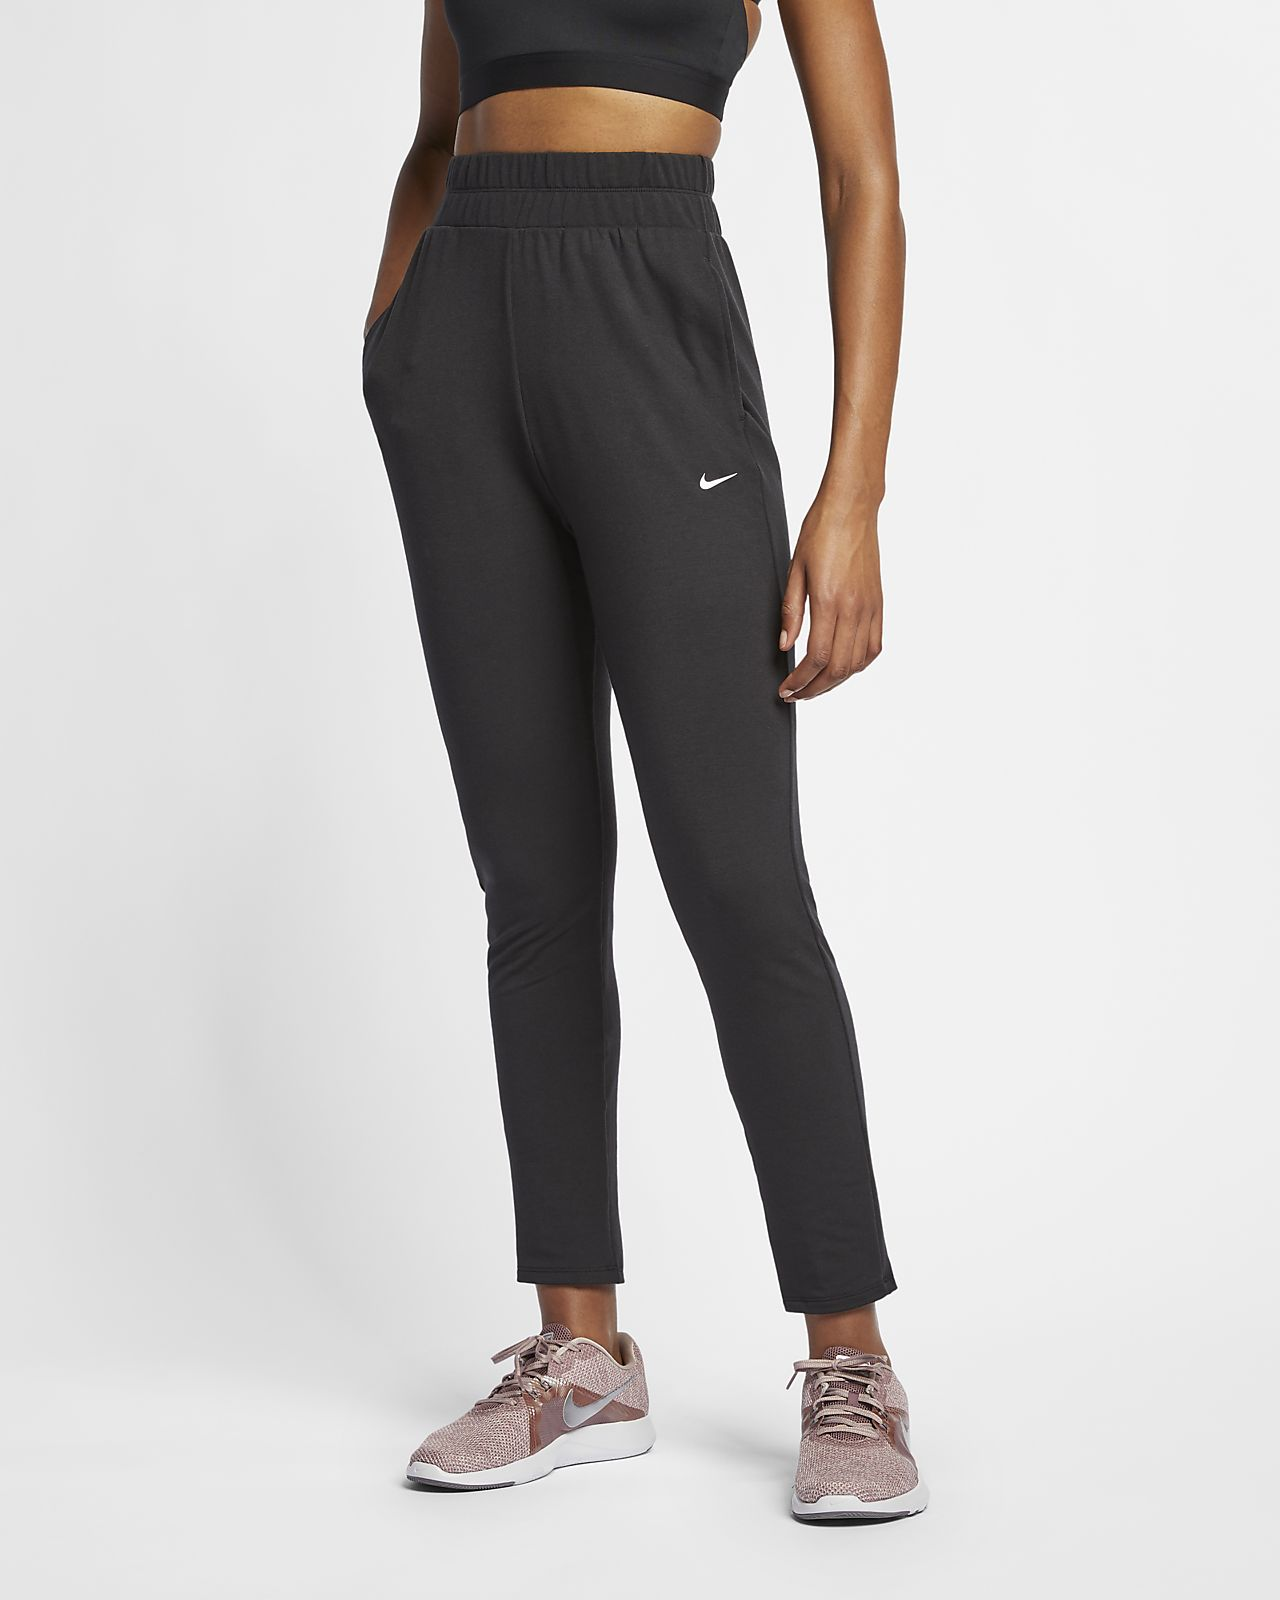 Nike Flow Women's Training Trousers